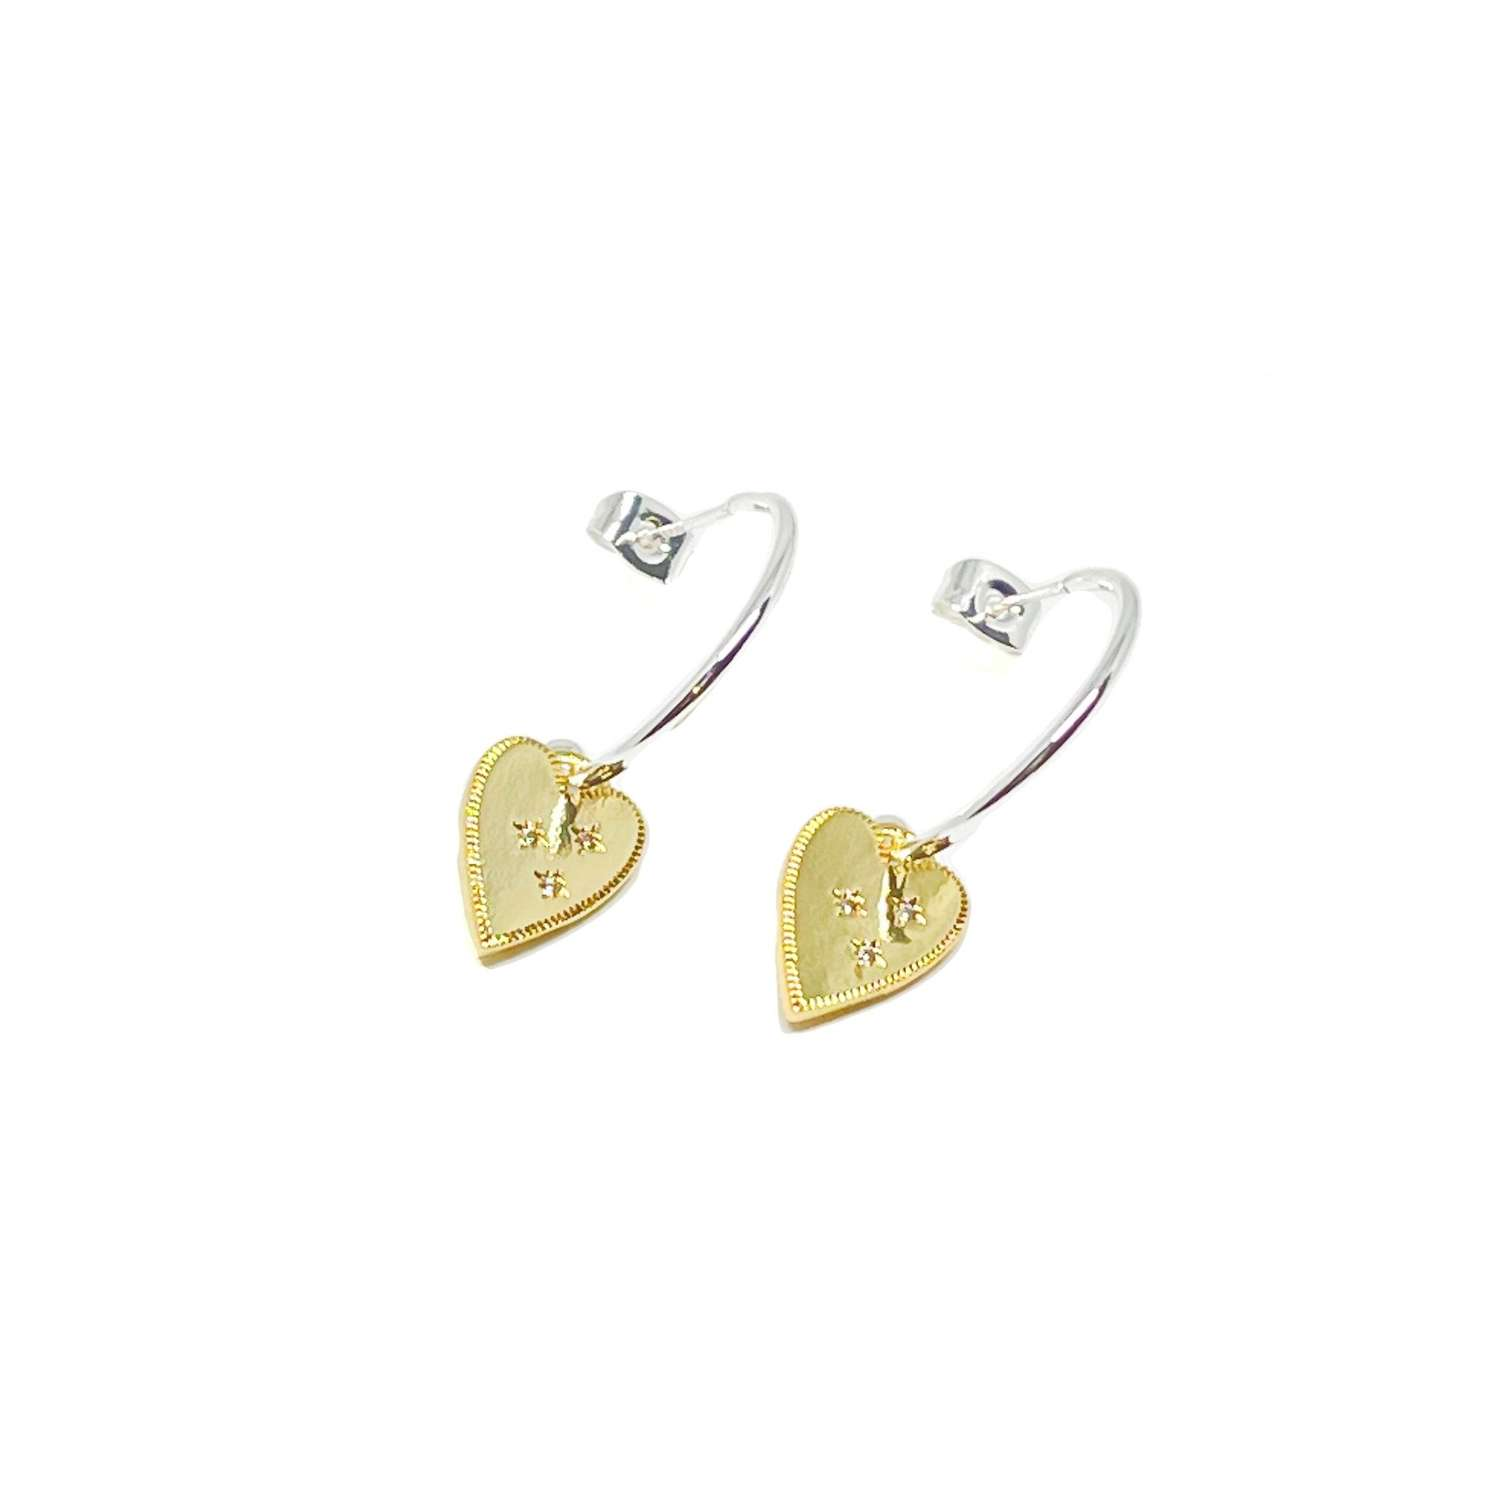 Lucy Sterling Silver Earrings - Gold